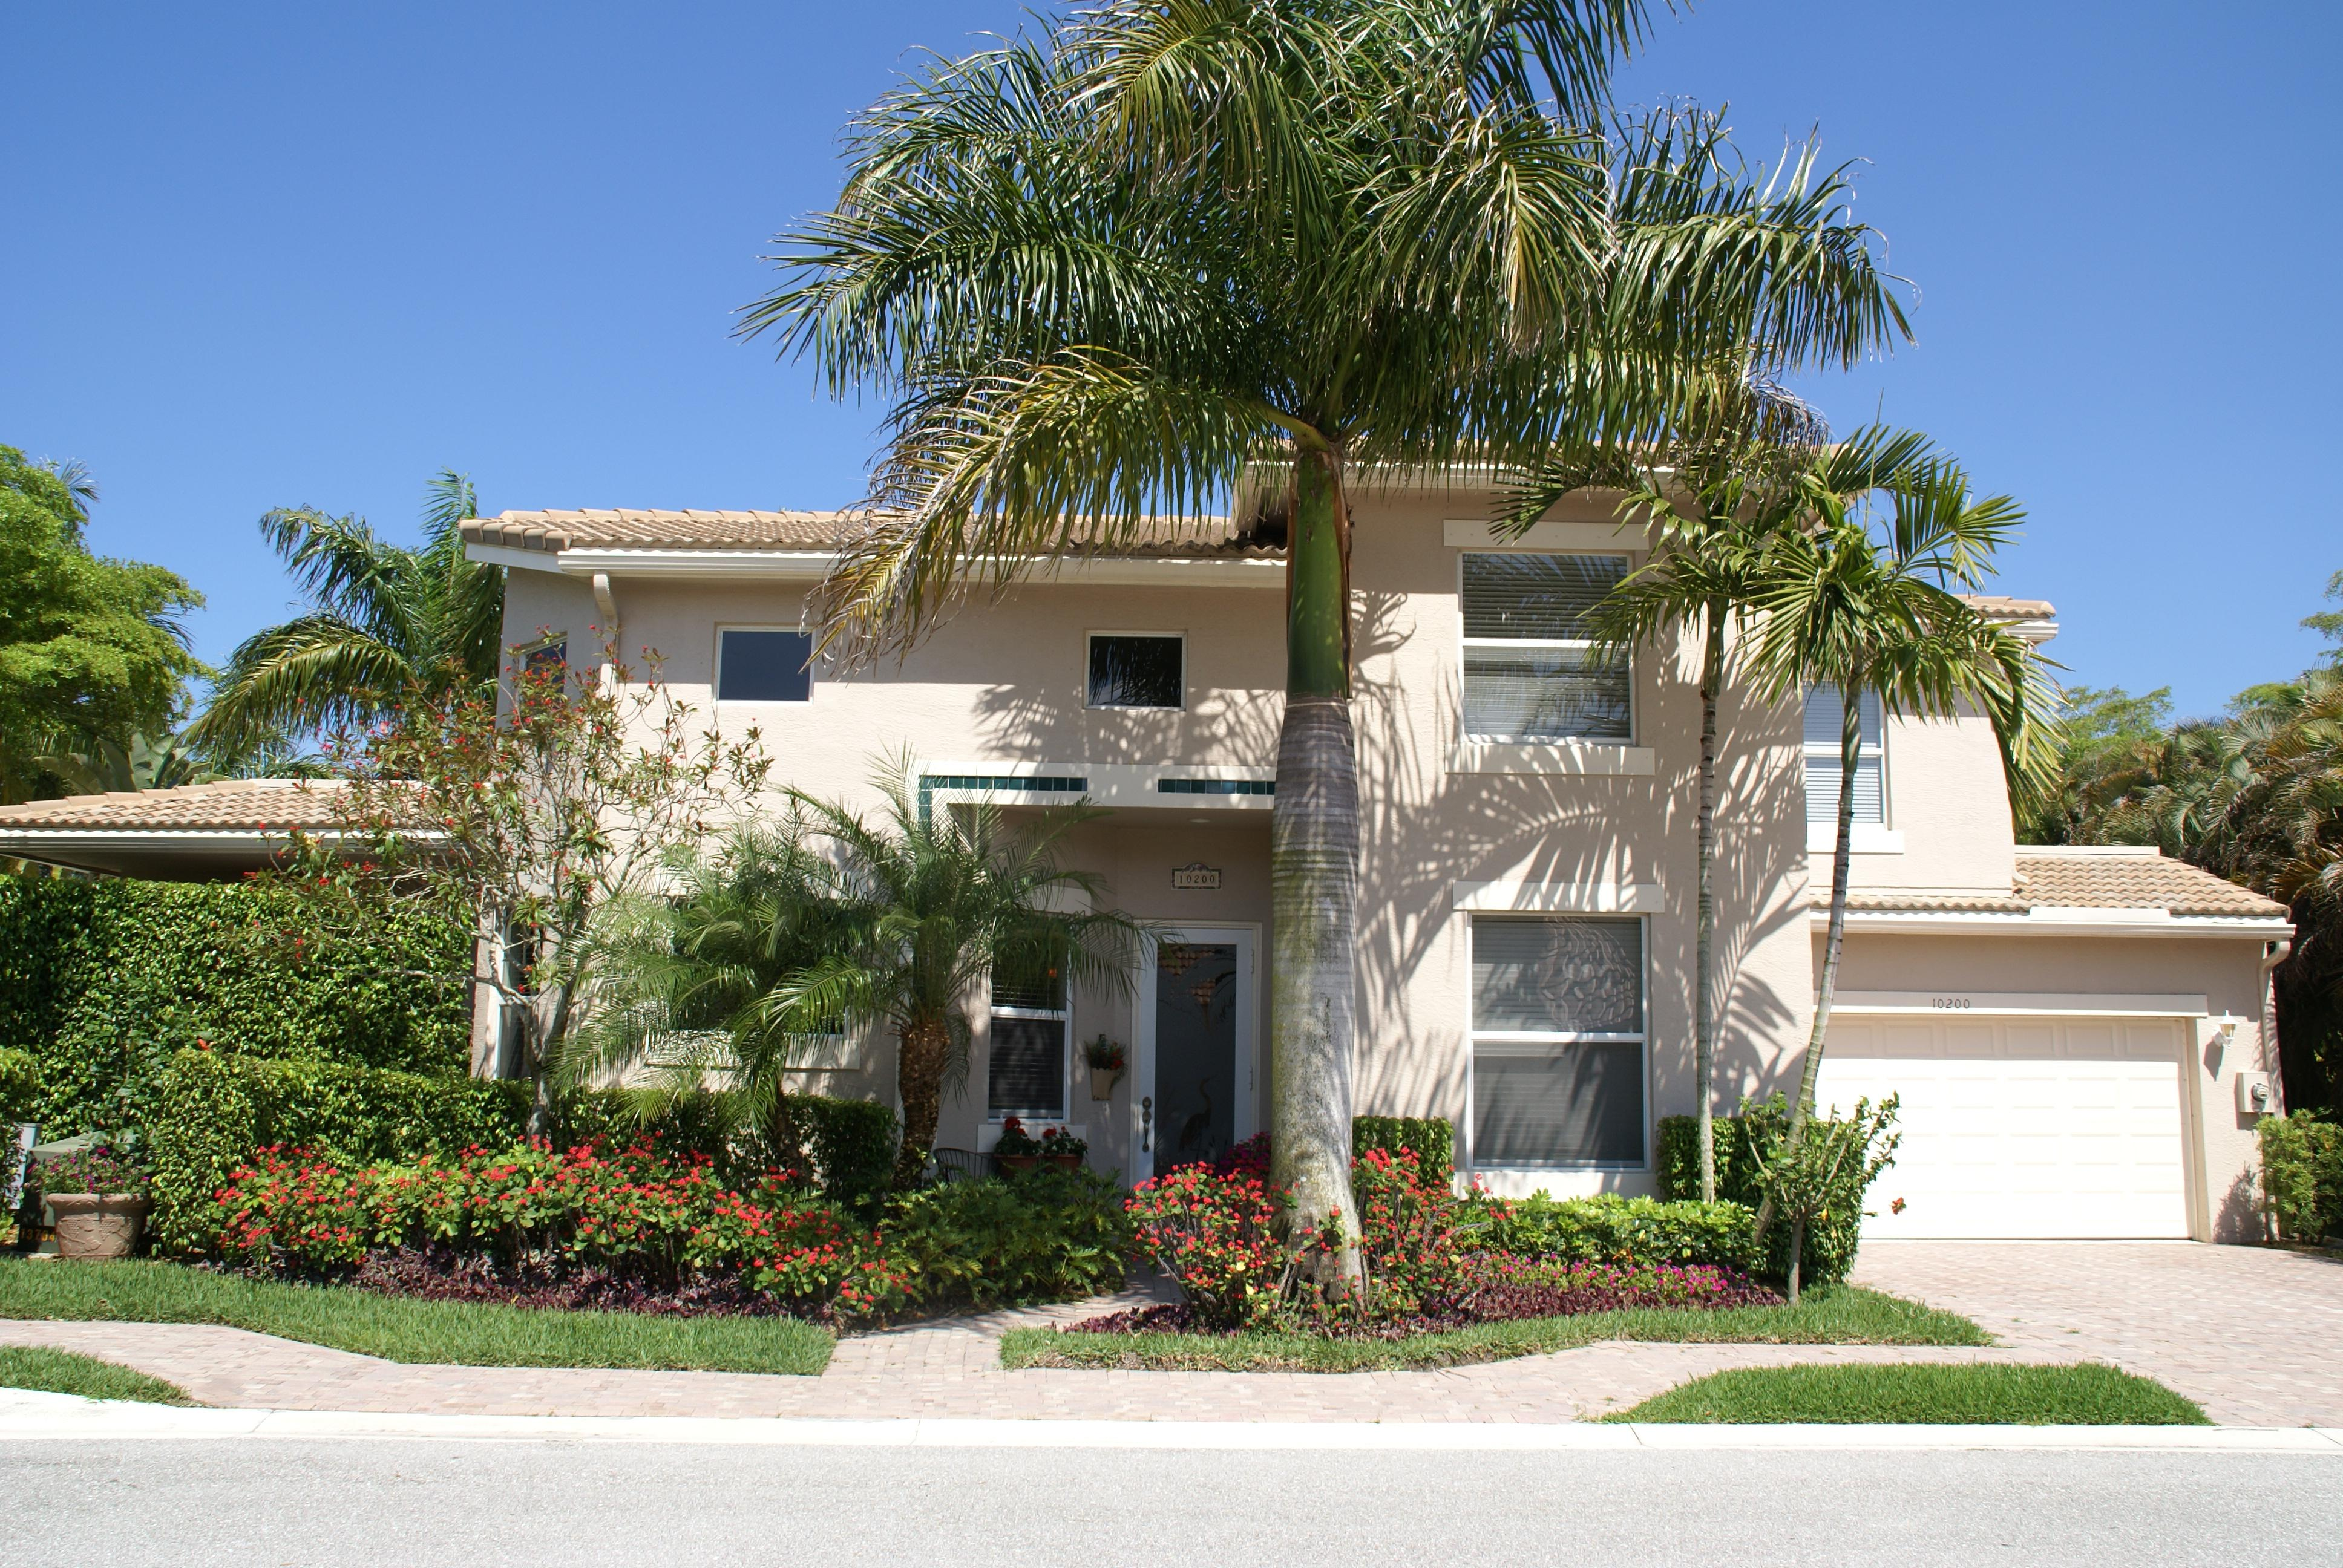 House Sale West Palm Beach Florida Ref Bestofhouse Net 21272